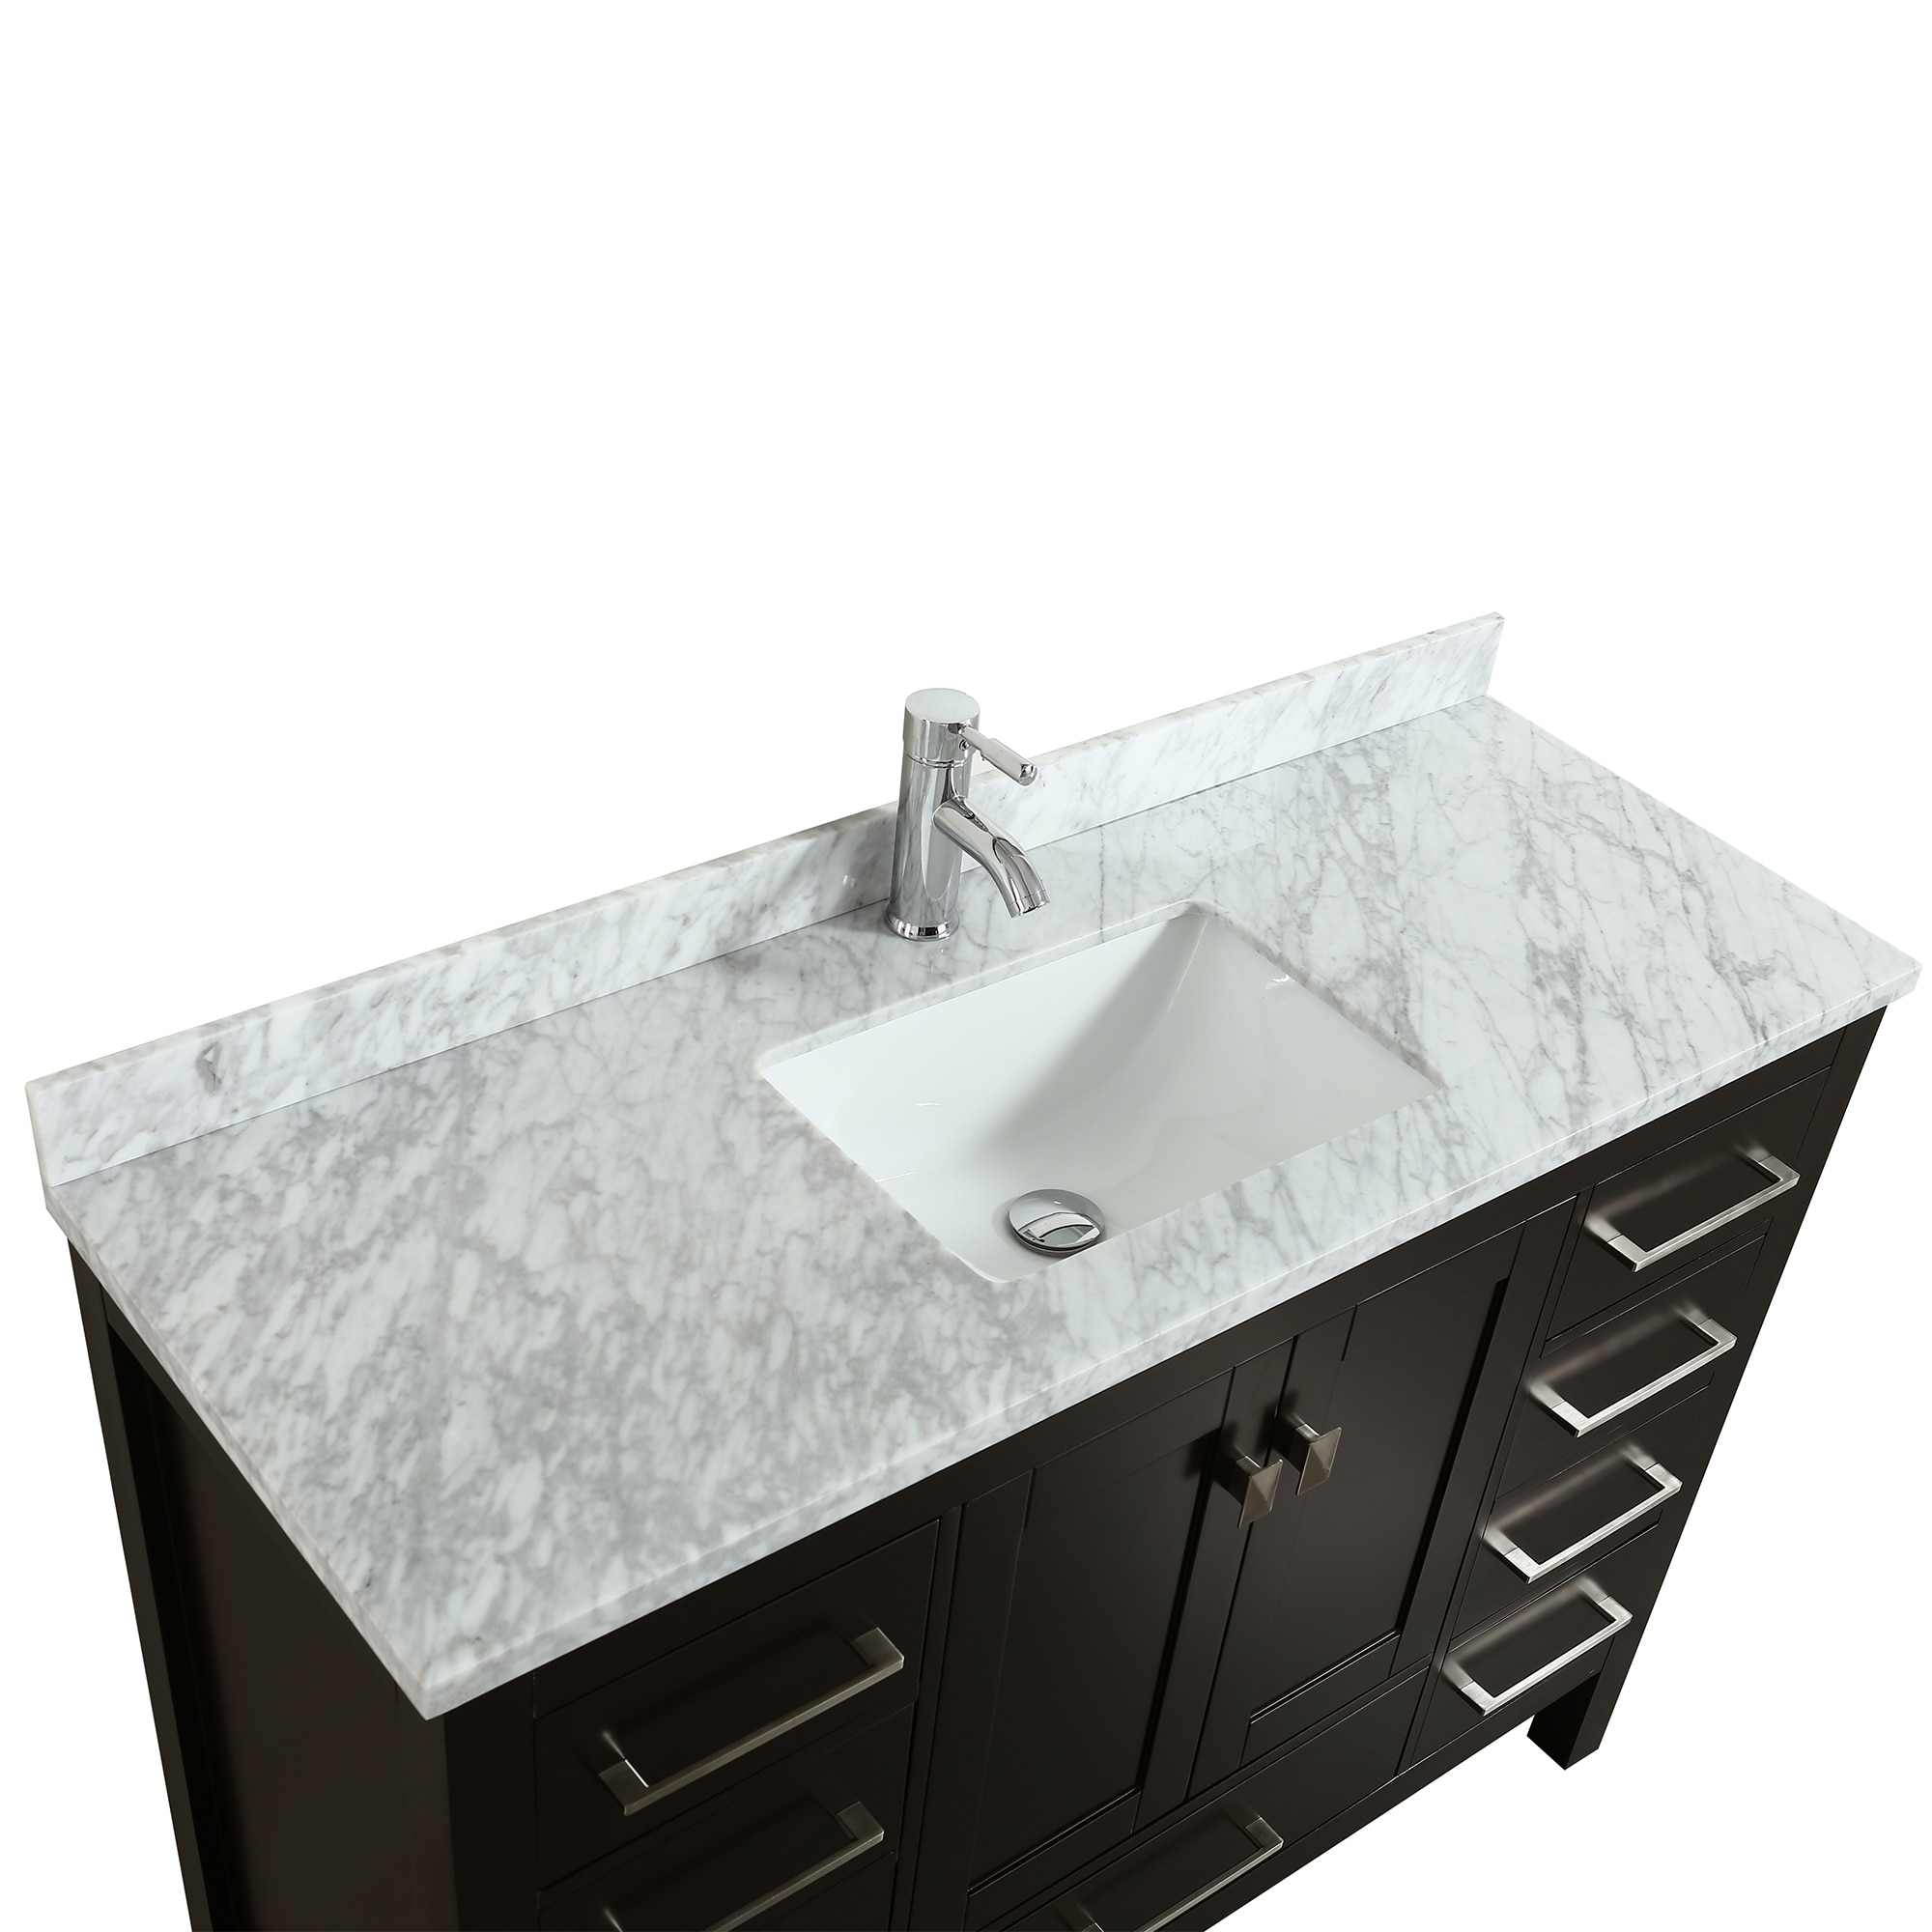 countertops as thoughts marble our white cost countertop my bathroom carrera on carrara